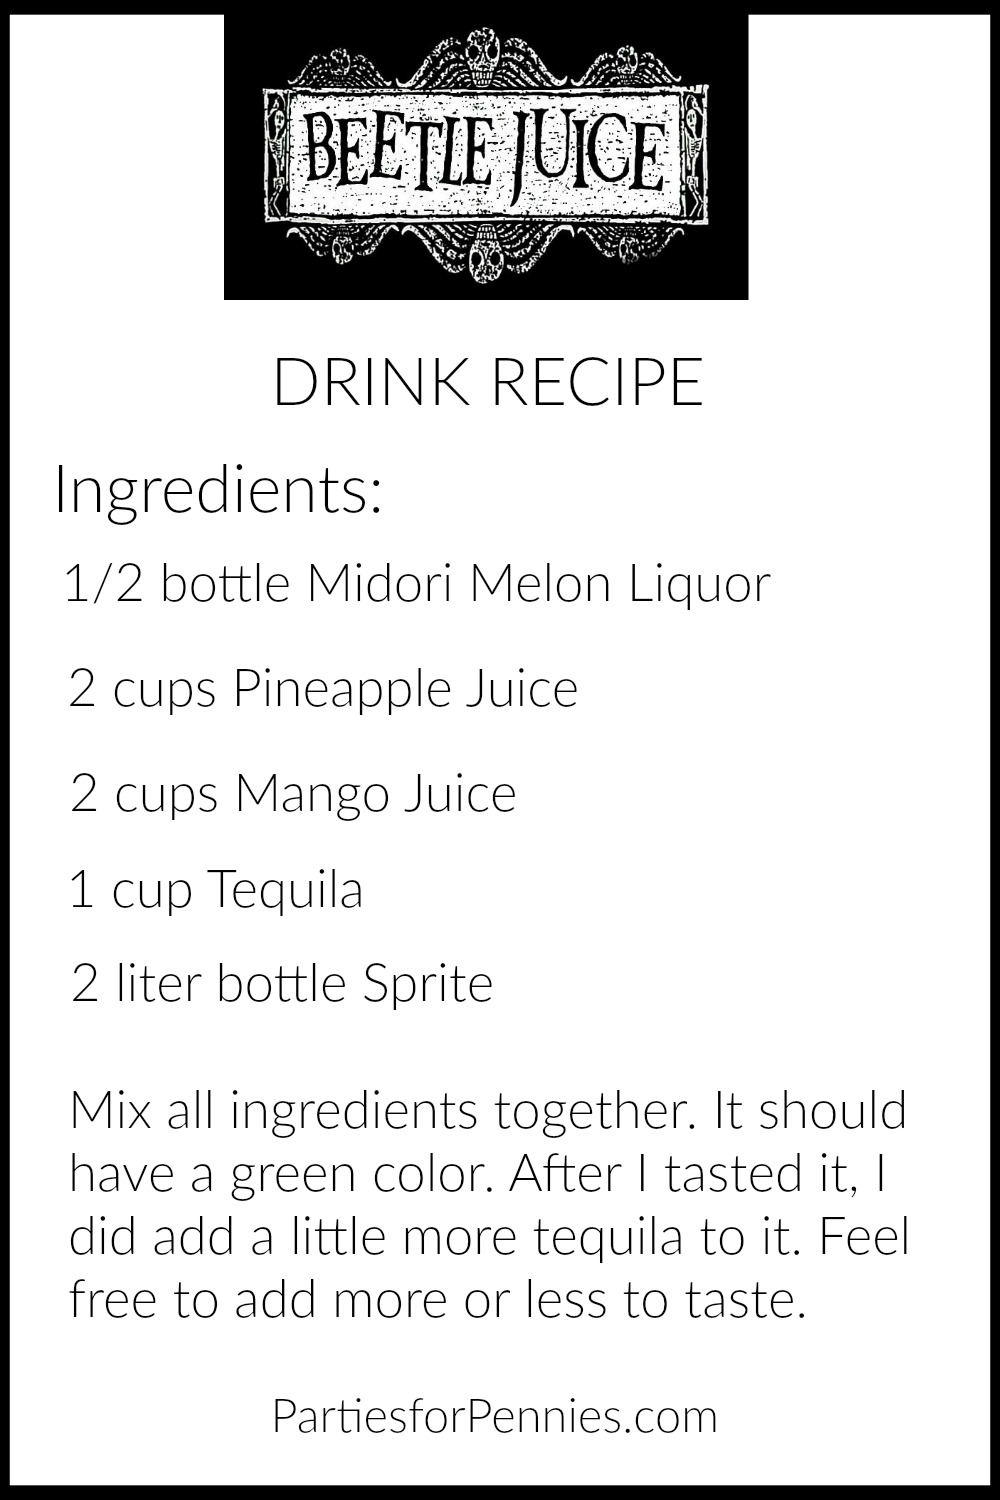 Beetlejuice Halloween Party | PartiesforPennies.com | Beetlejuice Drink Recipe